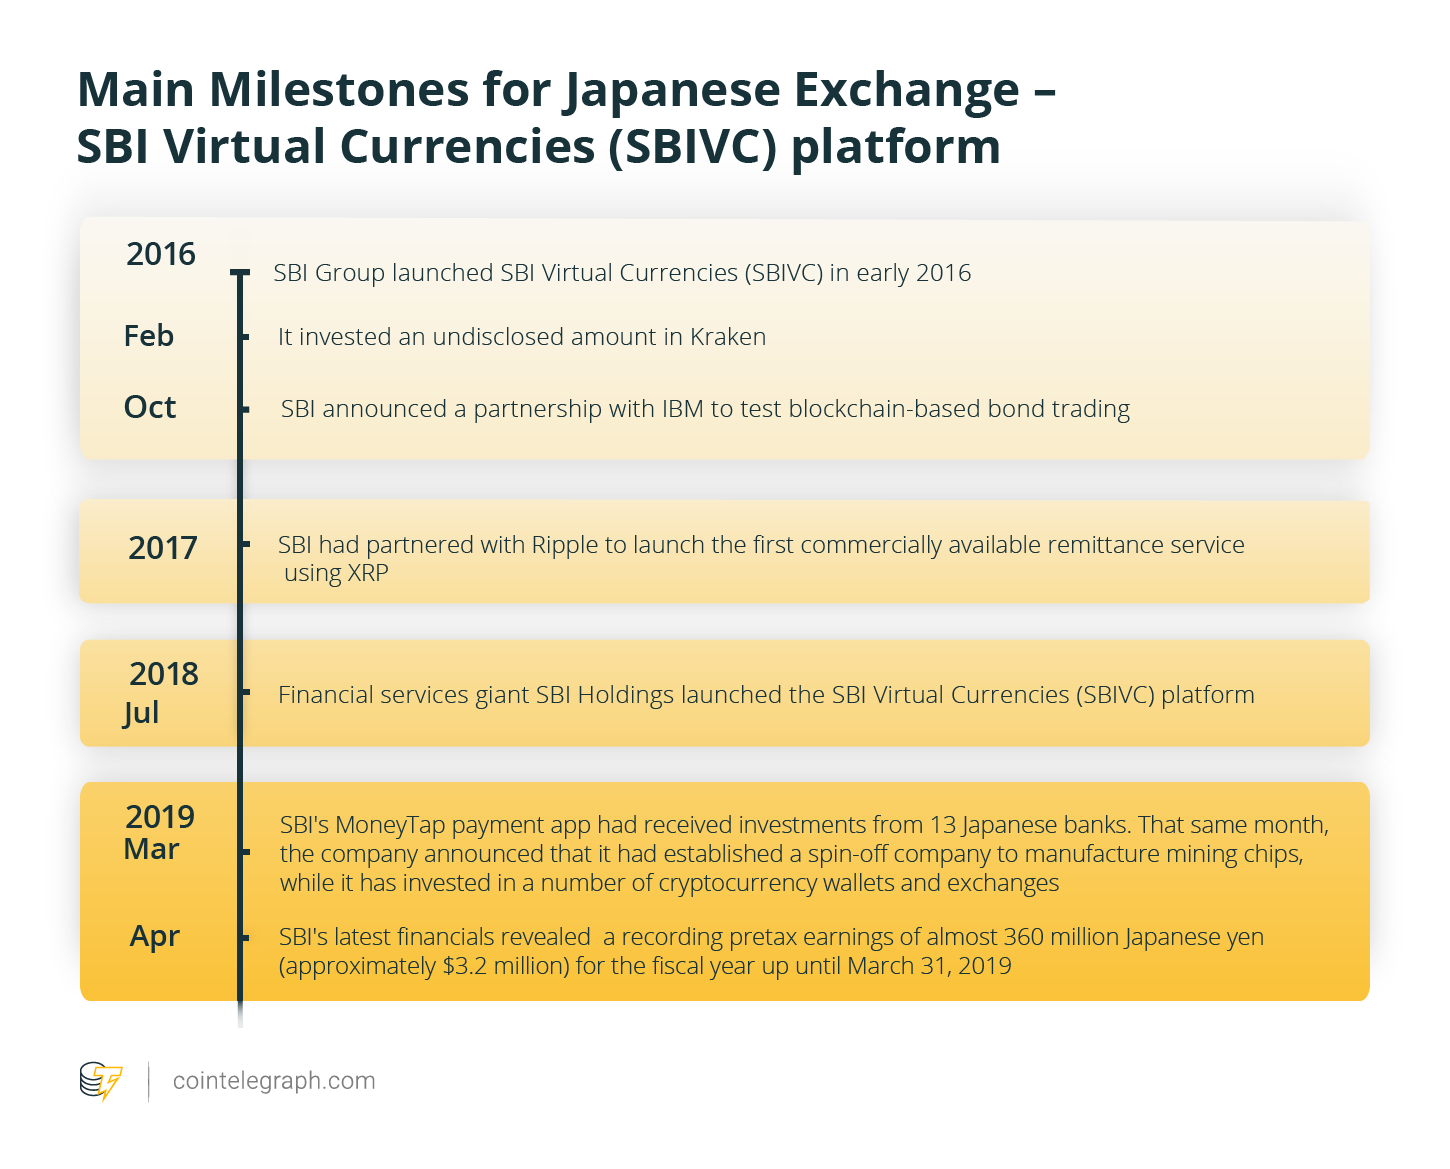 Main Milestones for Japanese Exchange – SBI Virtual Currencies (SBIVC) platform